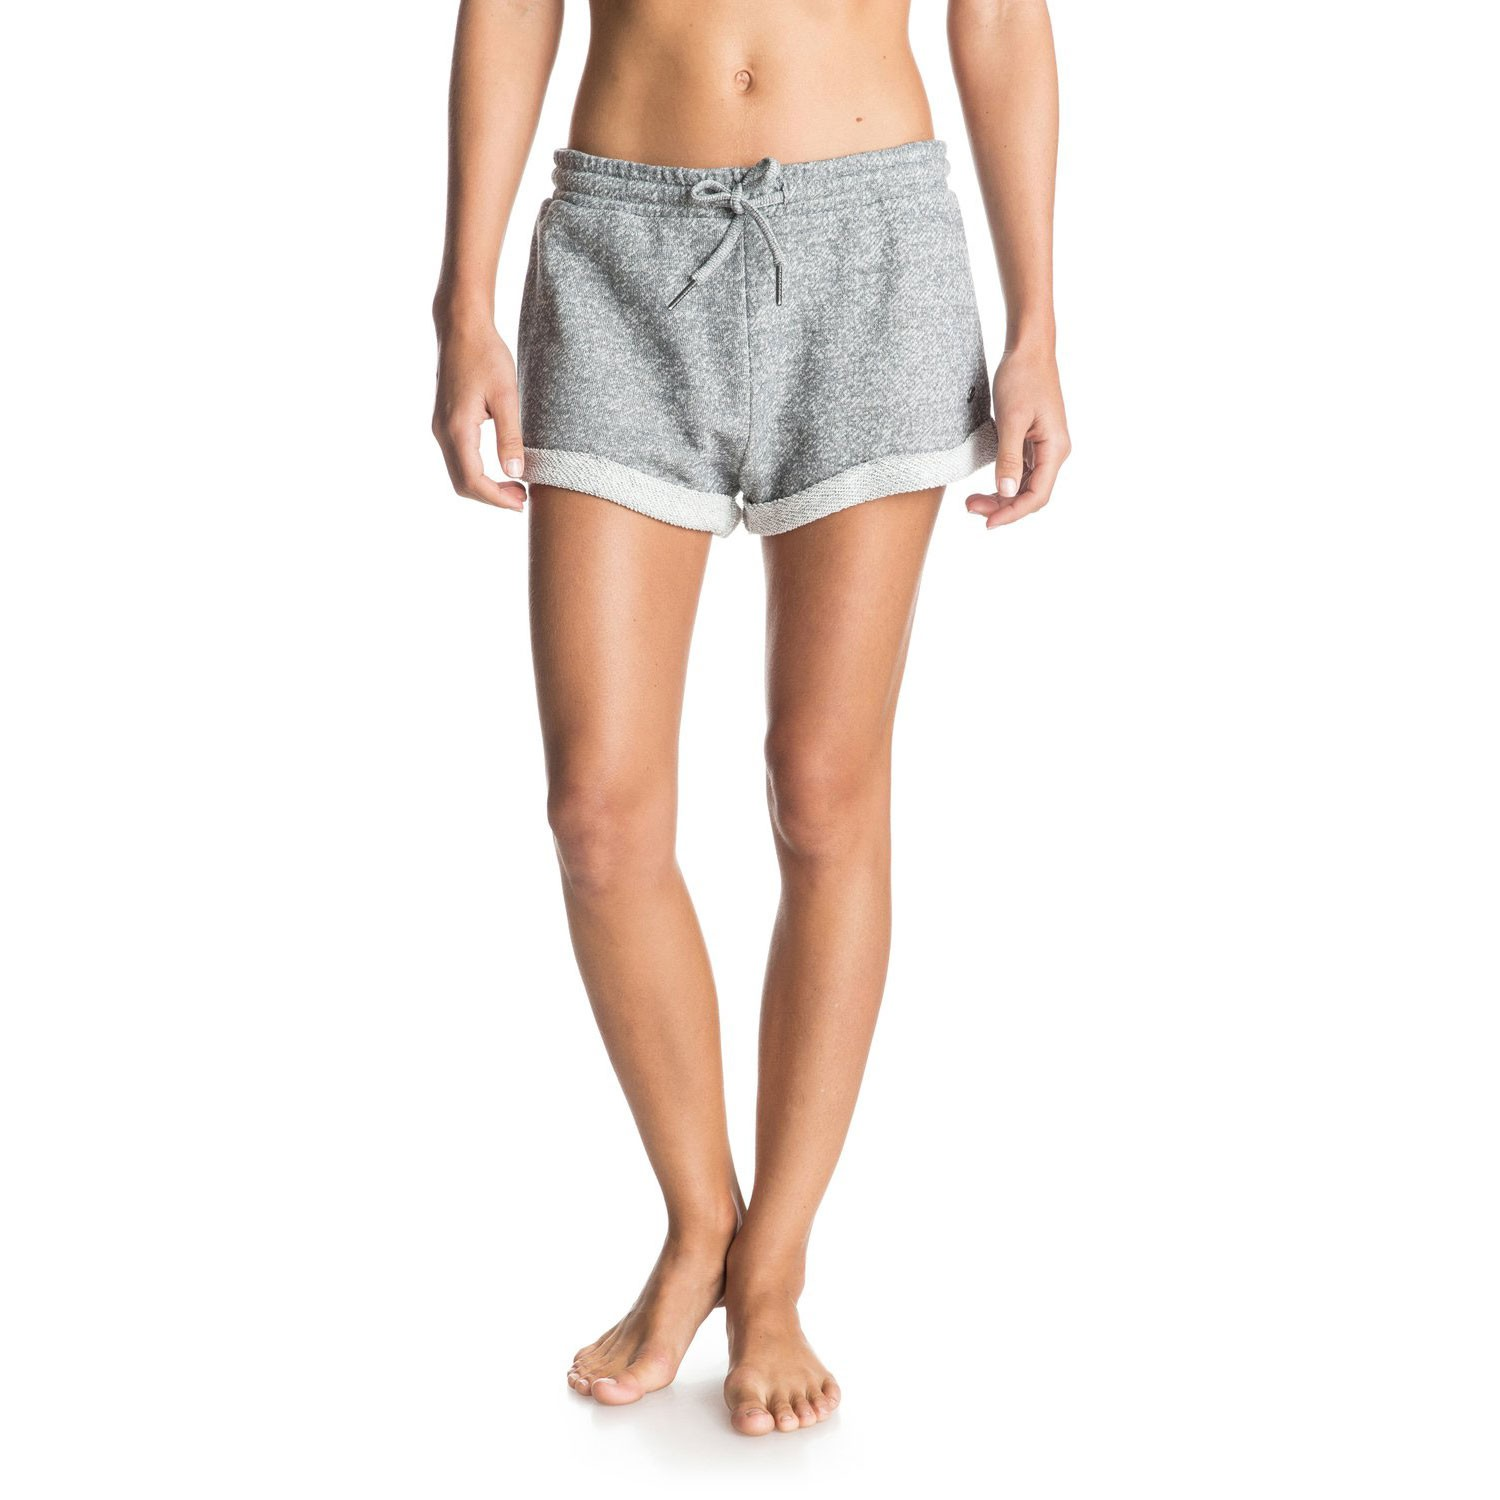 Kraťasy Roxy Signature Short heritage heather